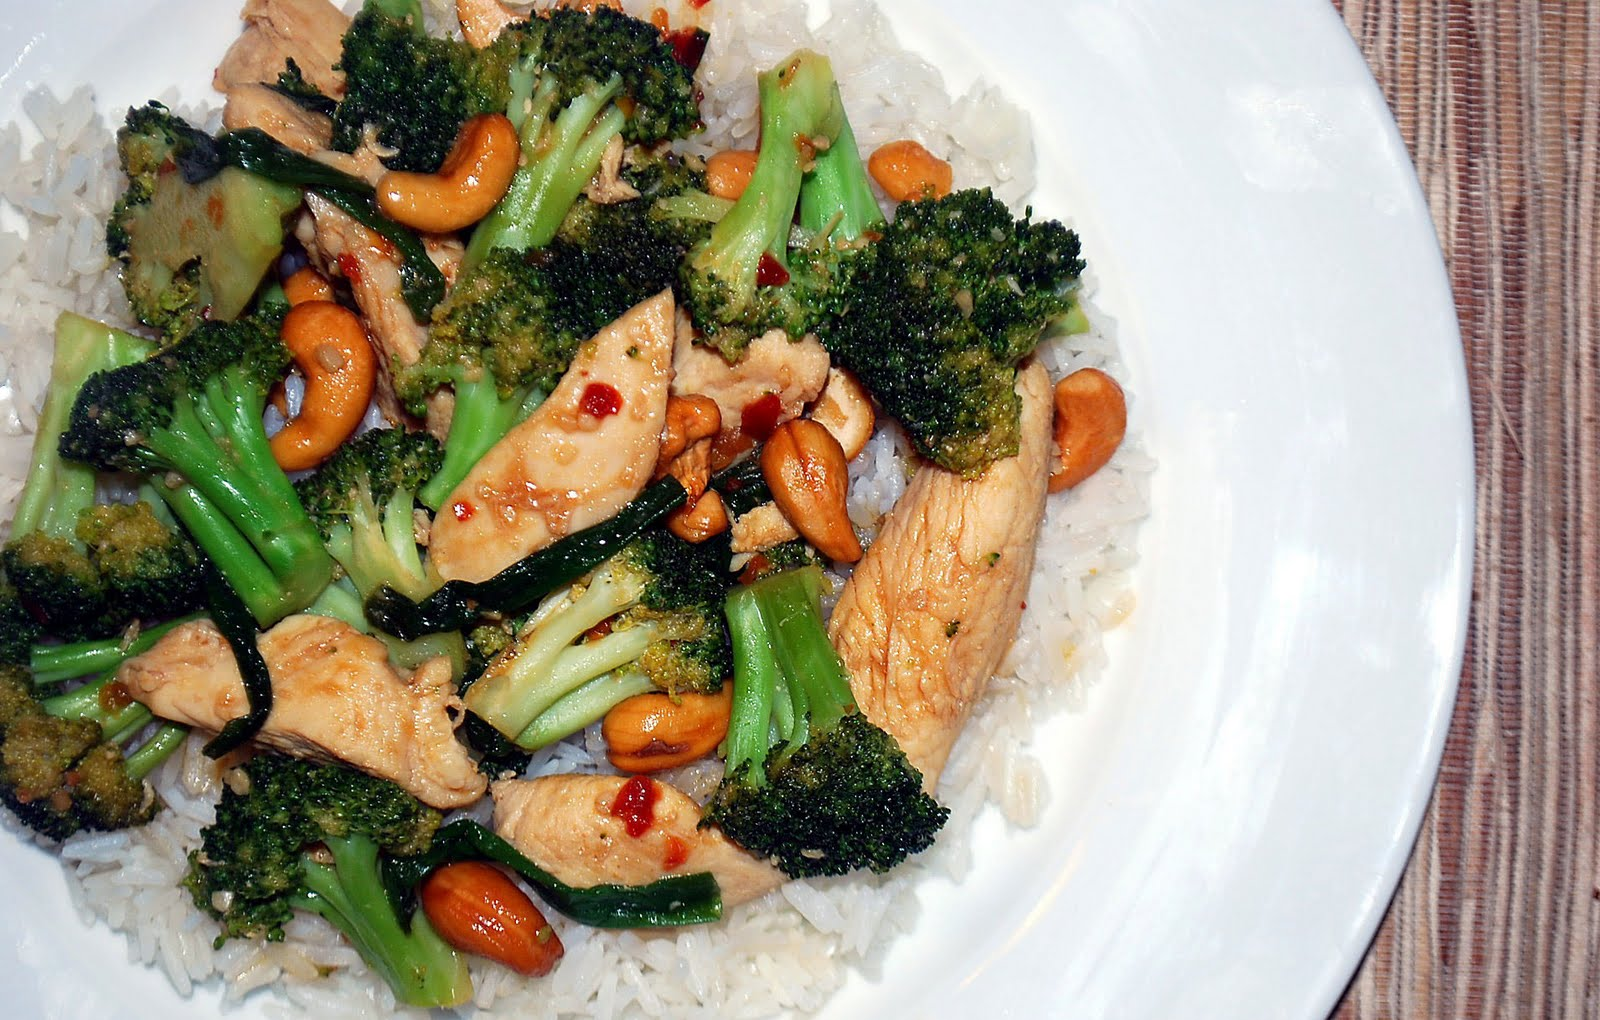 Lucy's Ladle: Spicy Cashew Chicken and Broccoli